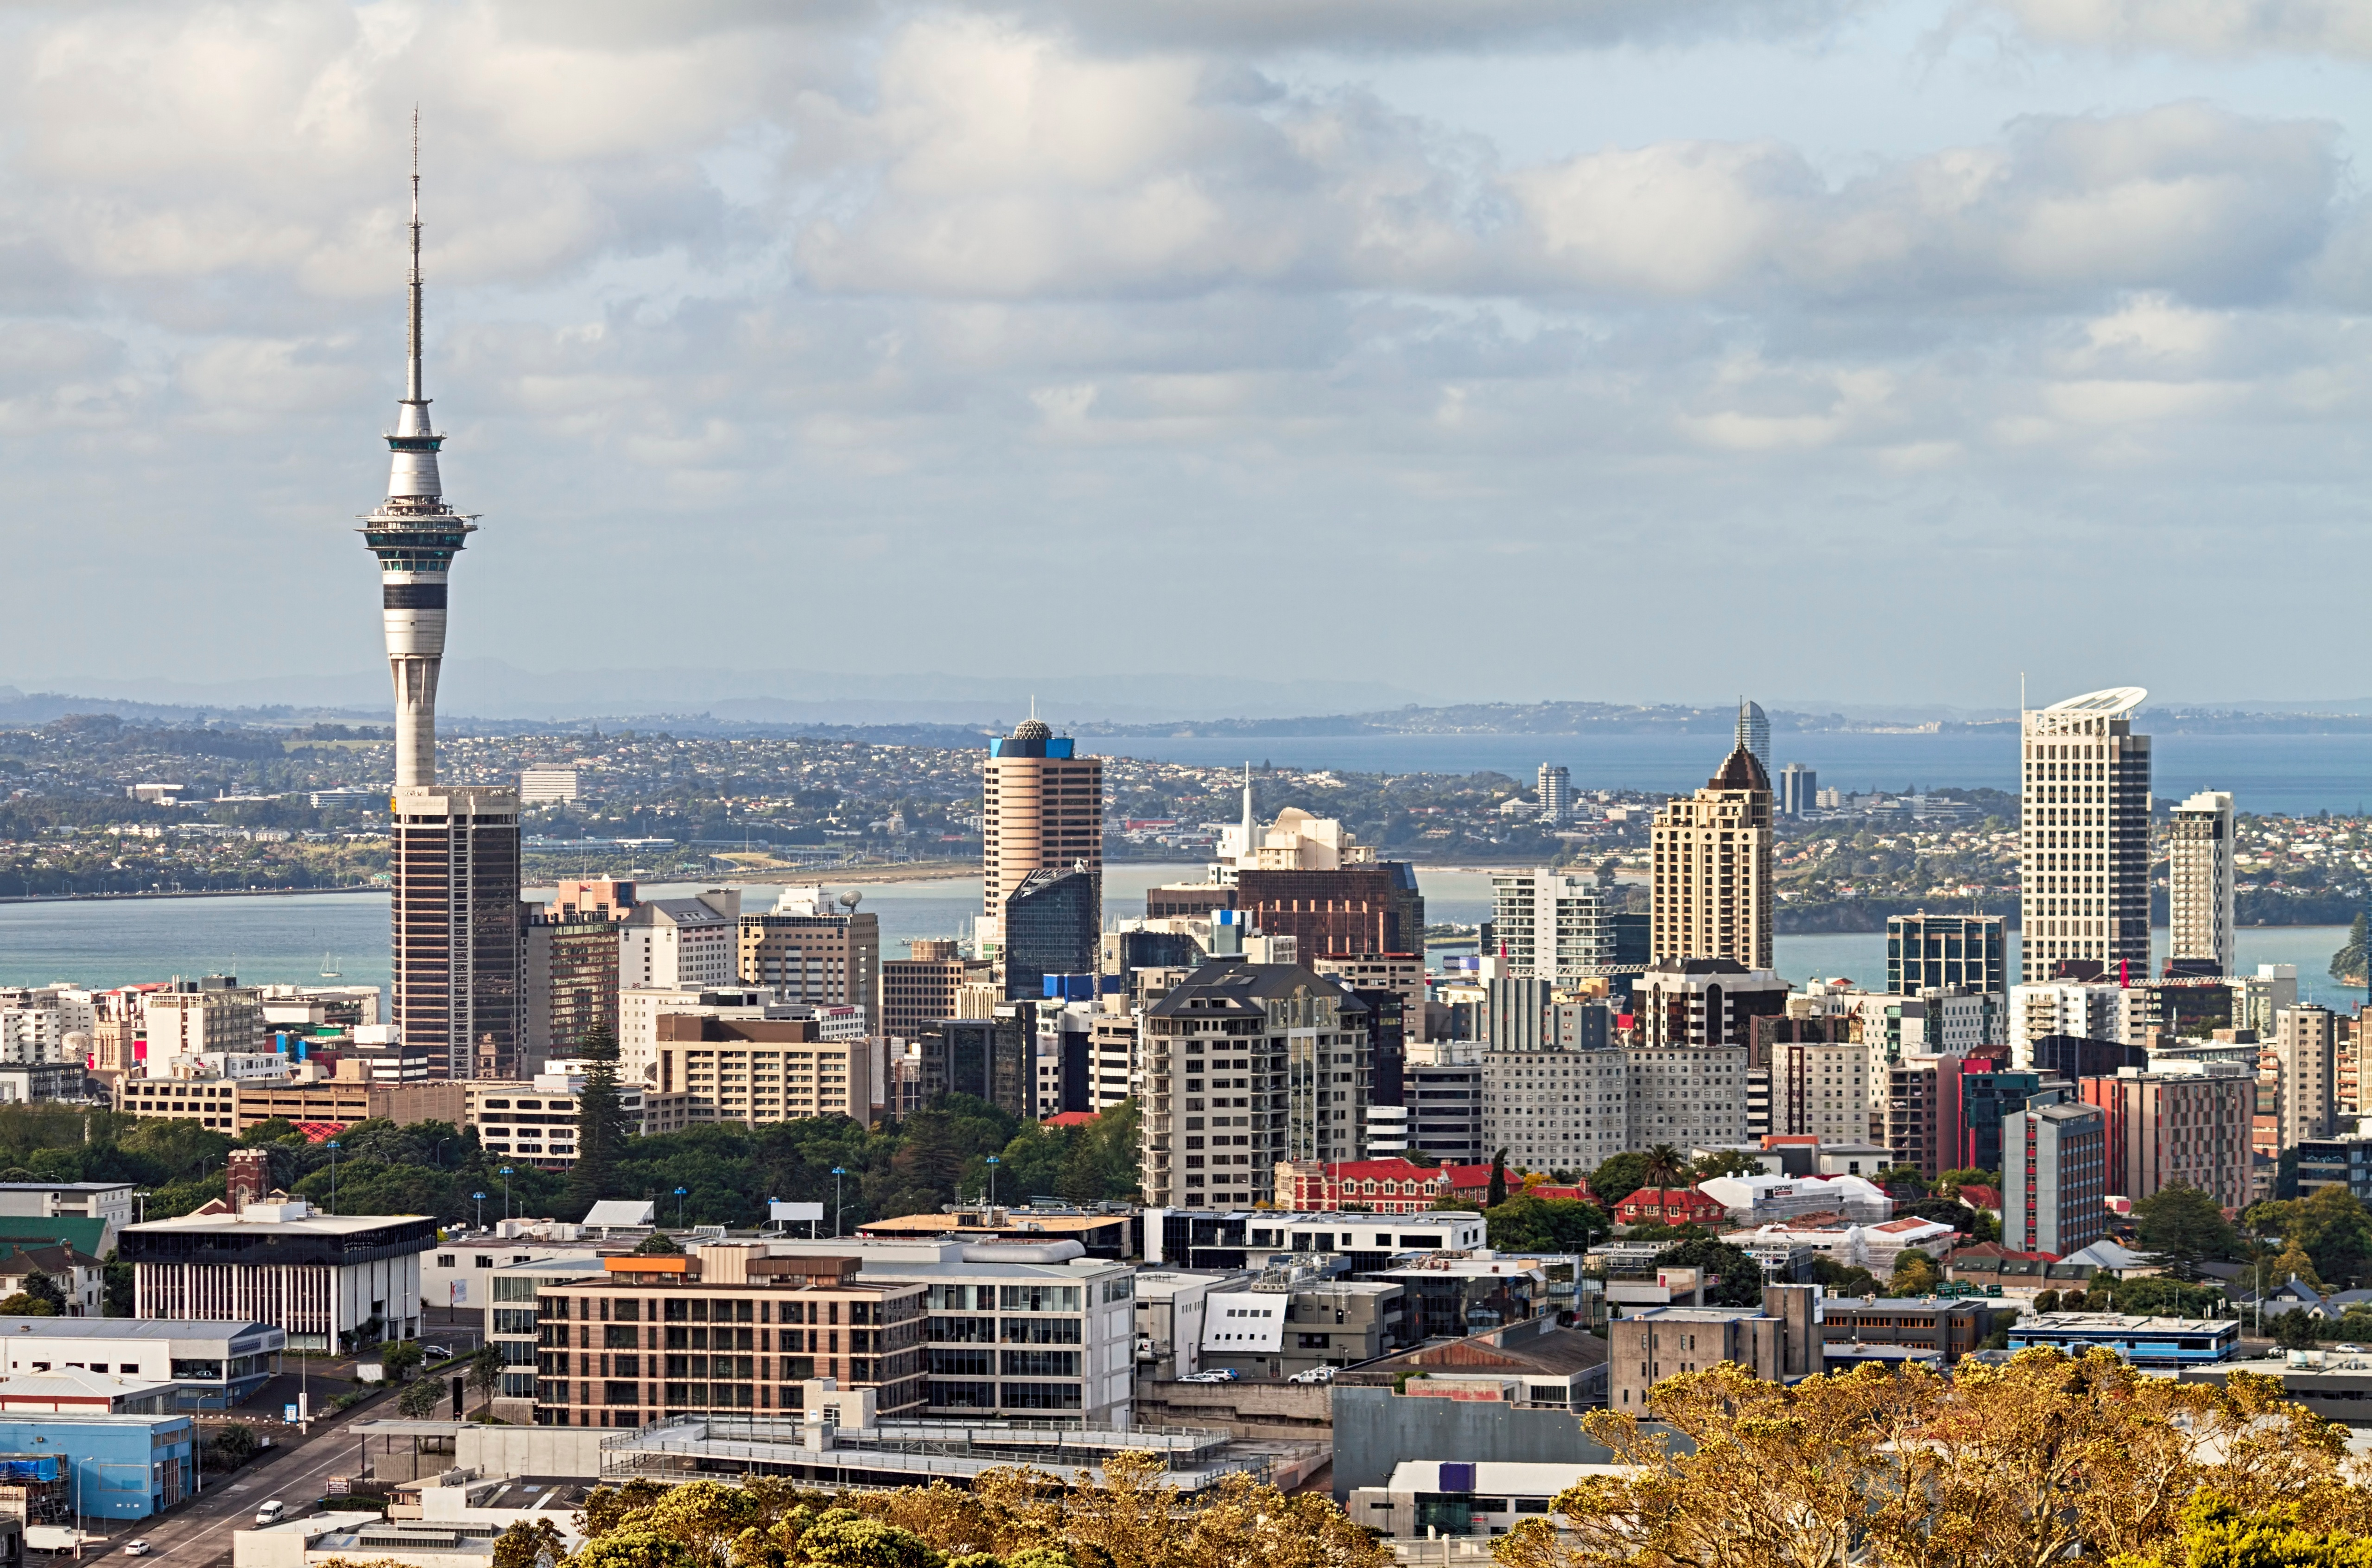 nz-housing-prices-continue-heating-up.jpg